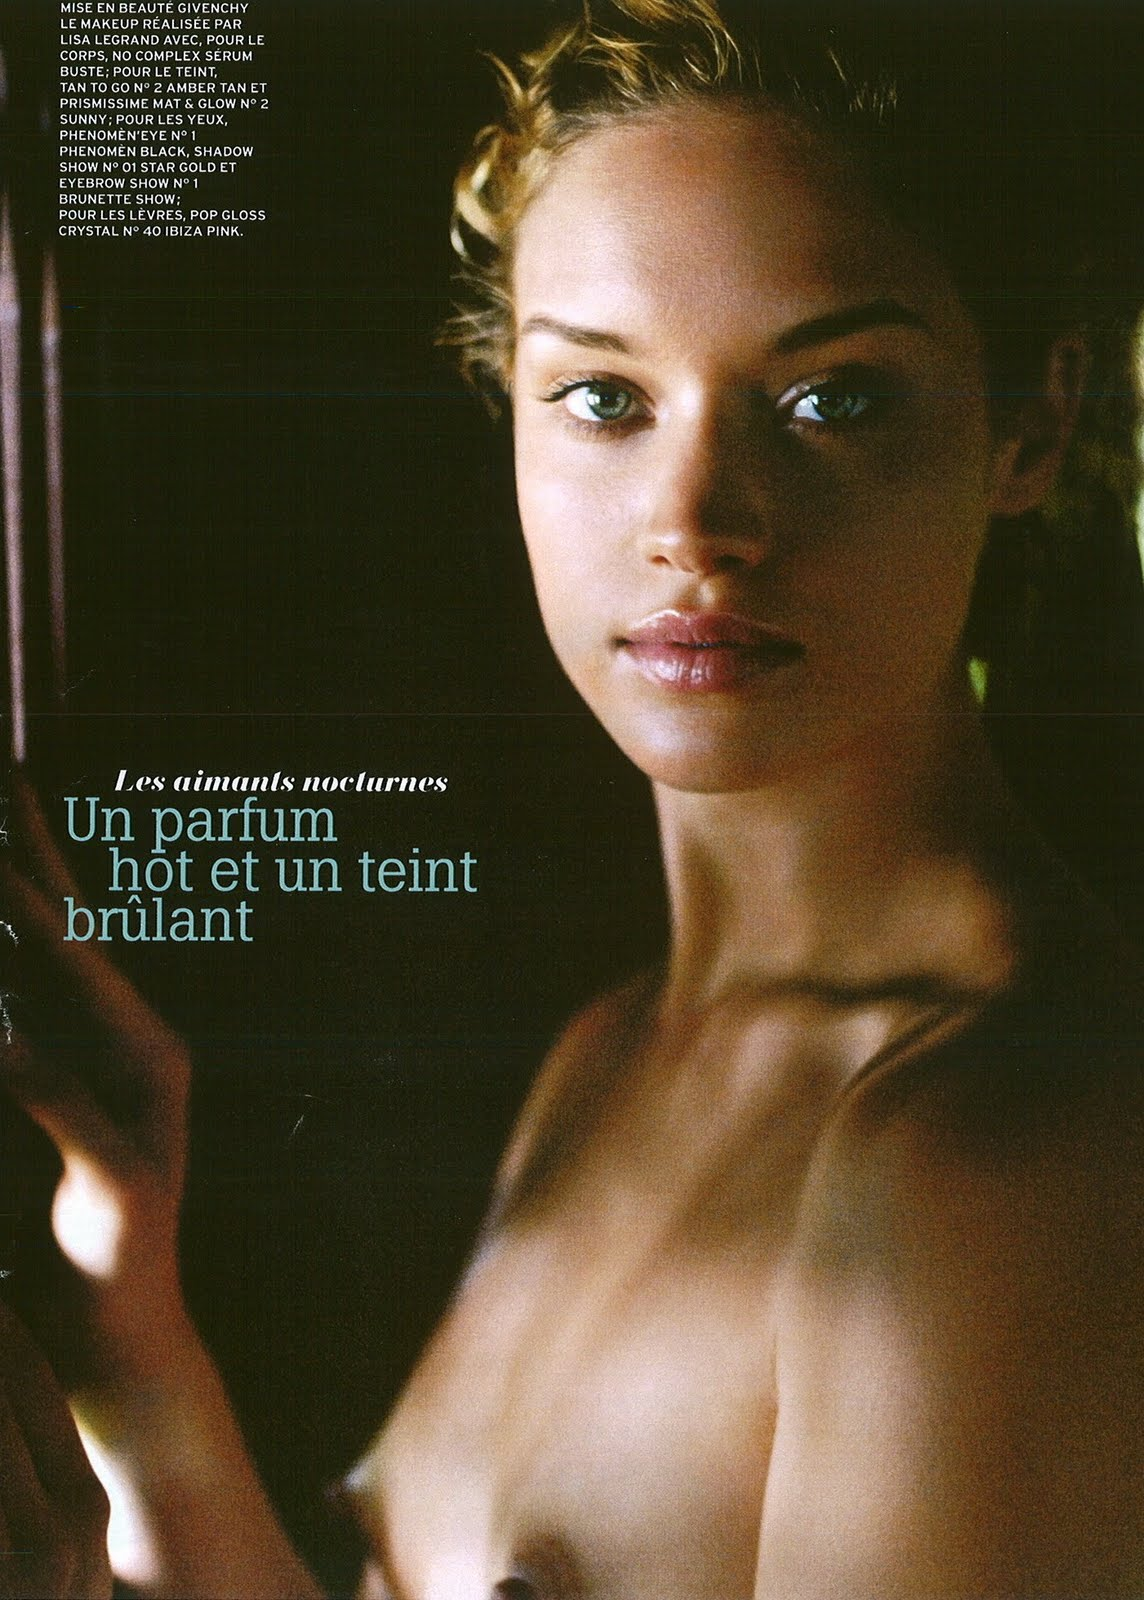 Julie Ordon for Marie Claire France, July 2008